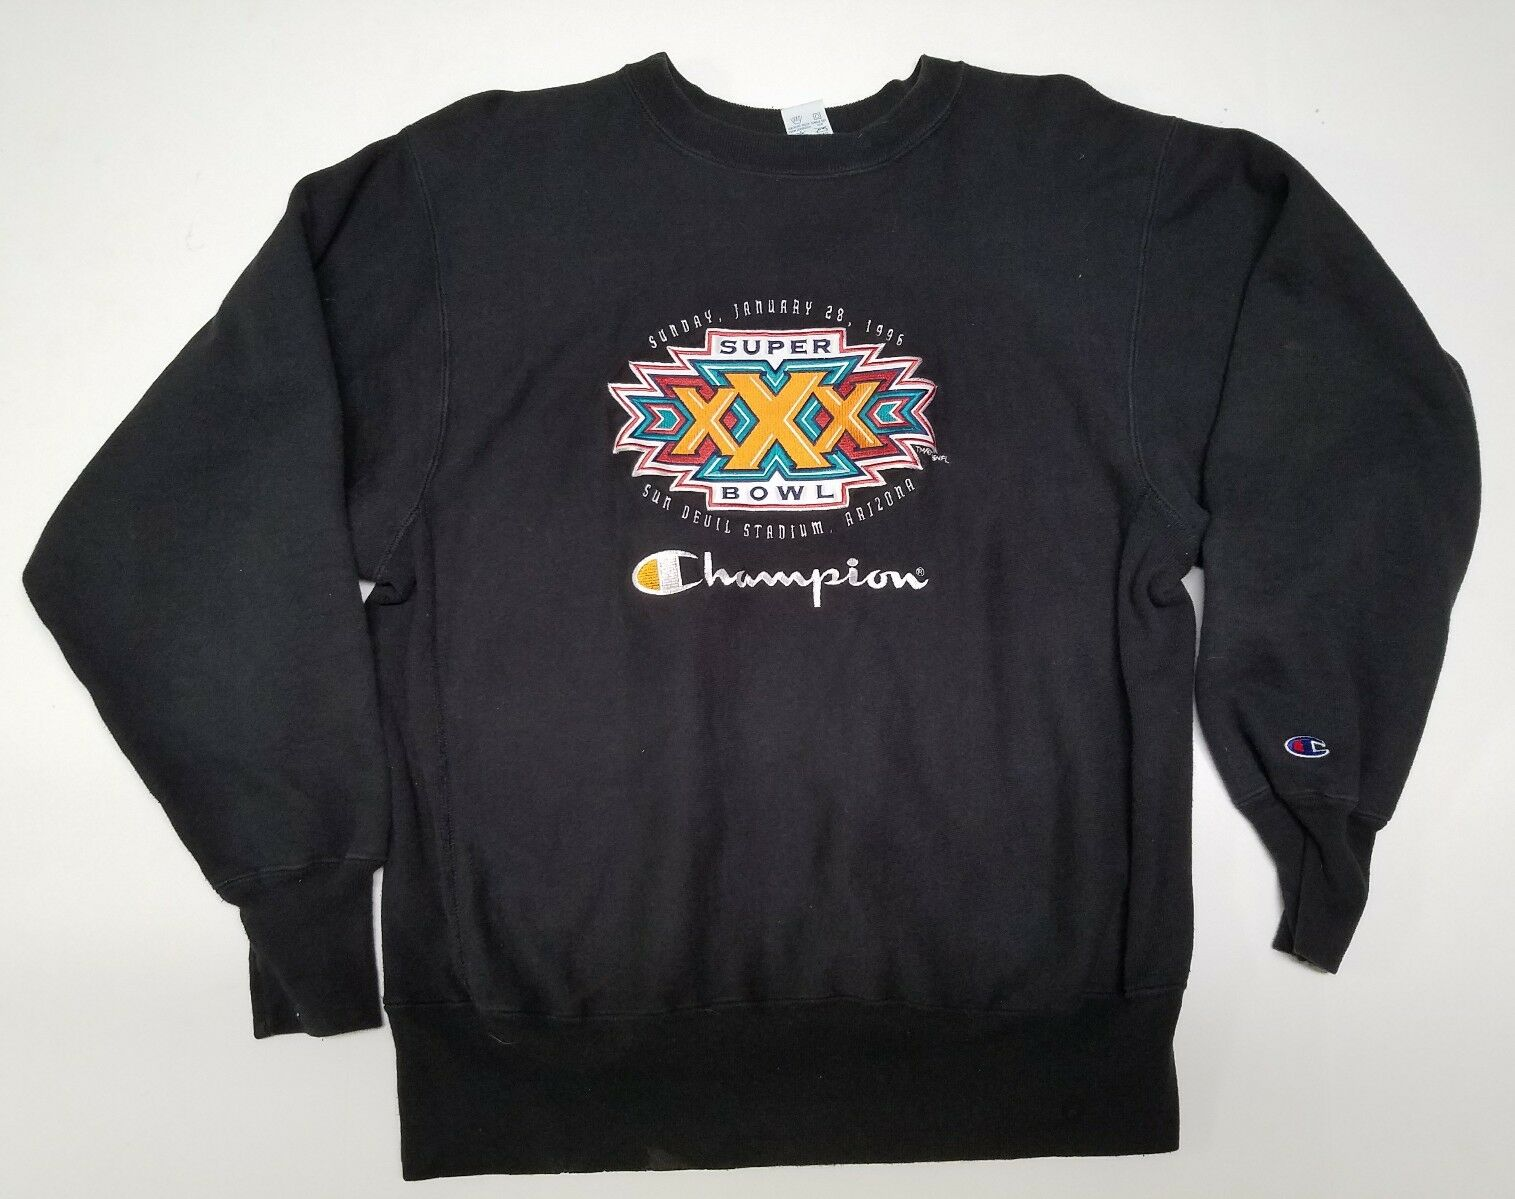 Vintage champion made in usa reverse weave sweater 1996 Super Bowl size XL